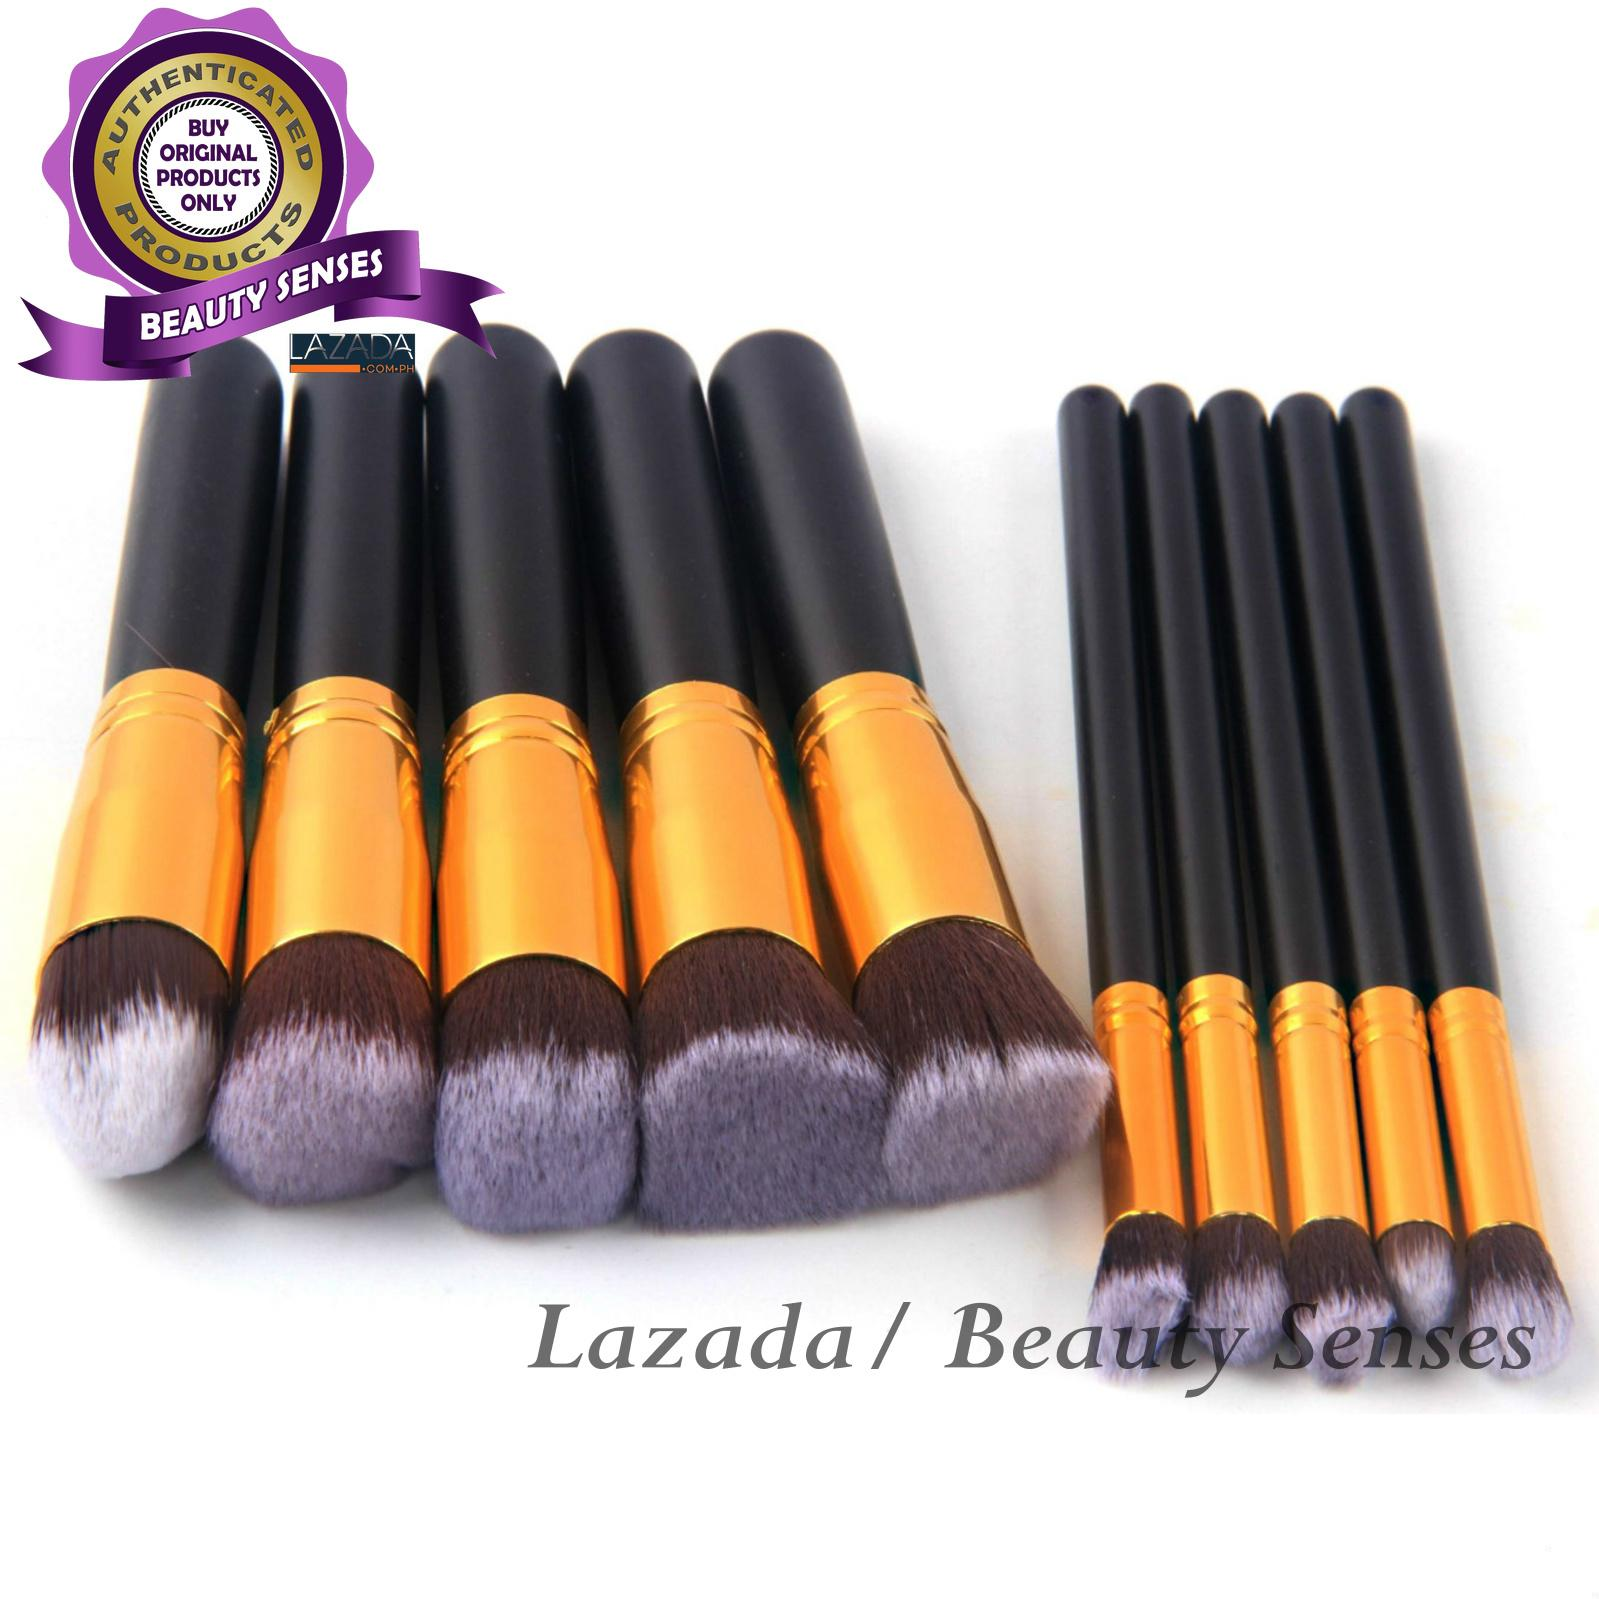 7f0c526e525 Makeup Brush brands - Applicator on sale, prices, set & reviews in ...